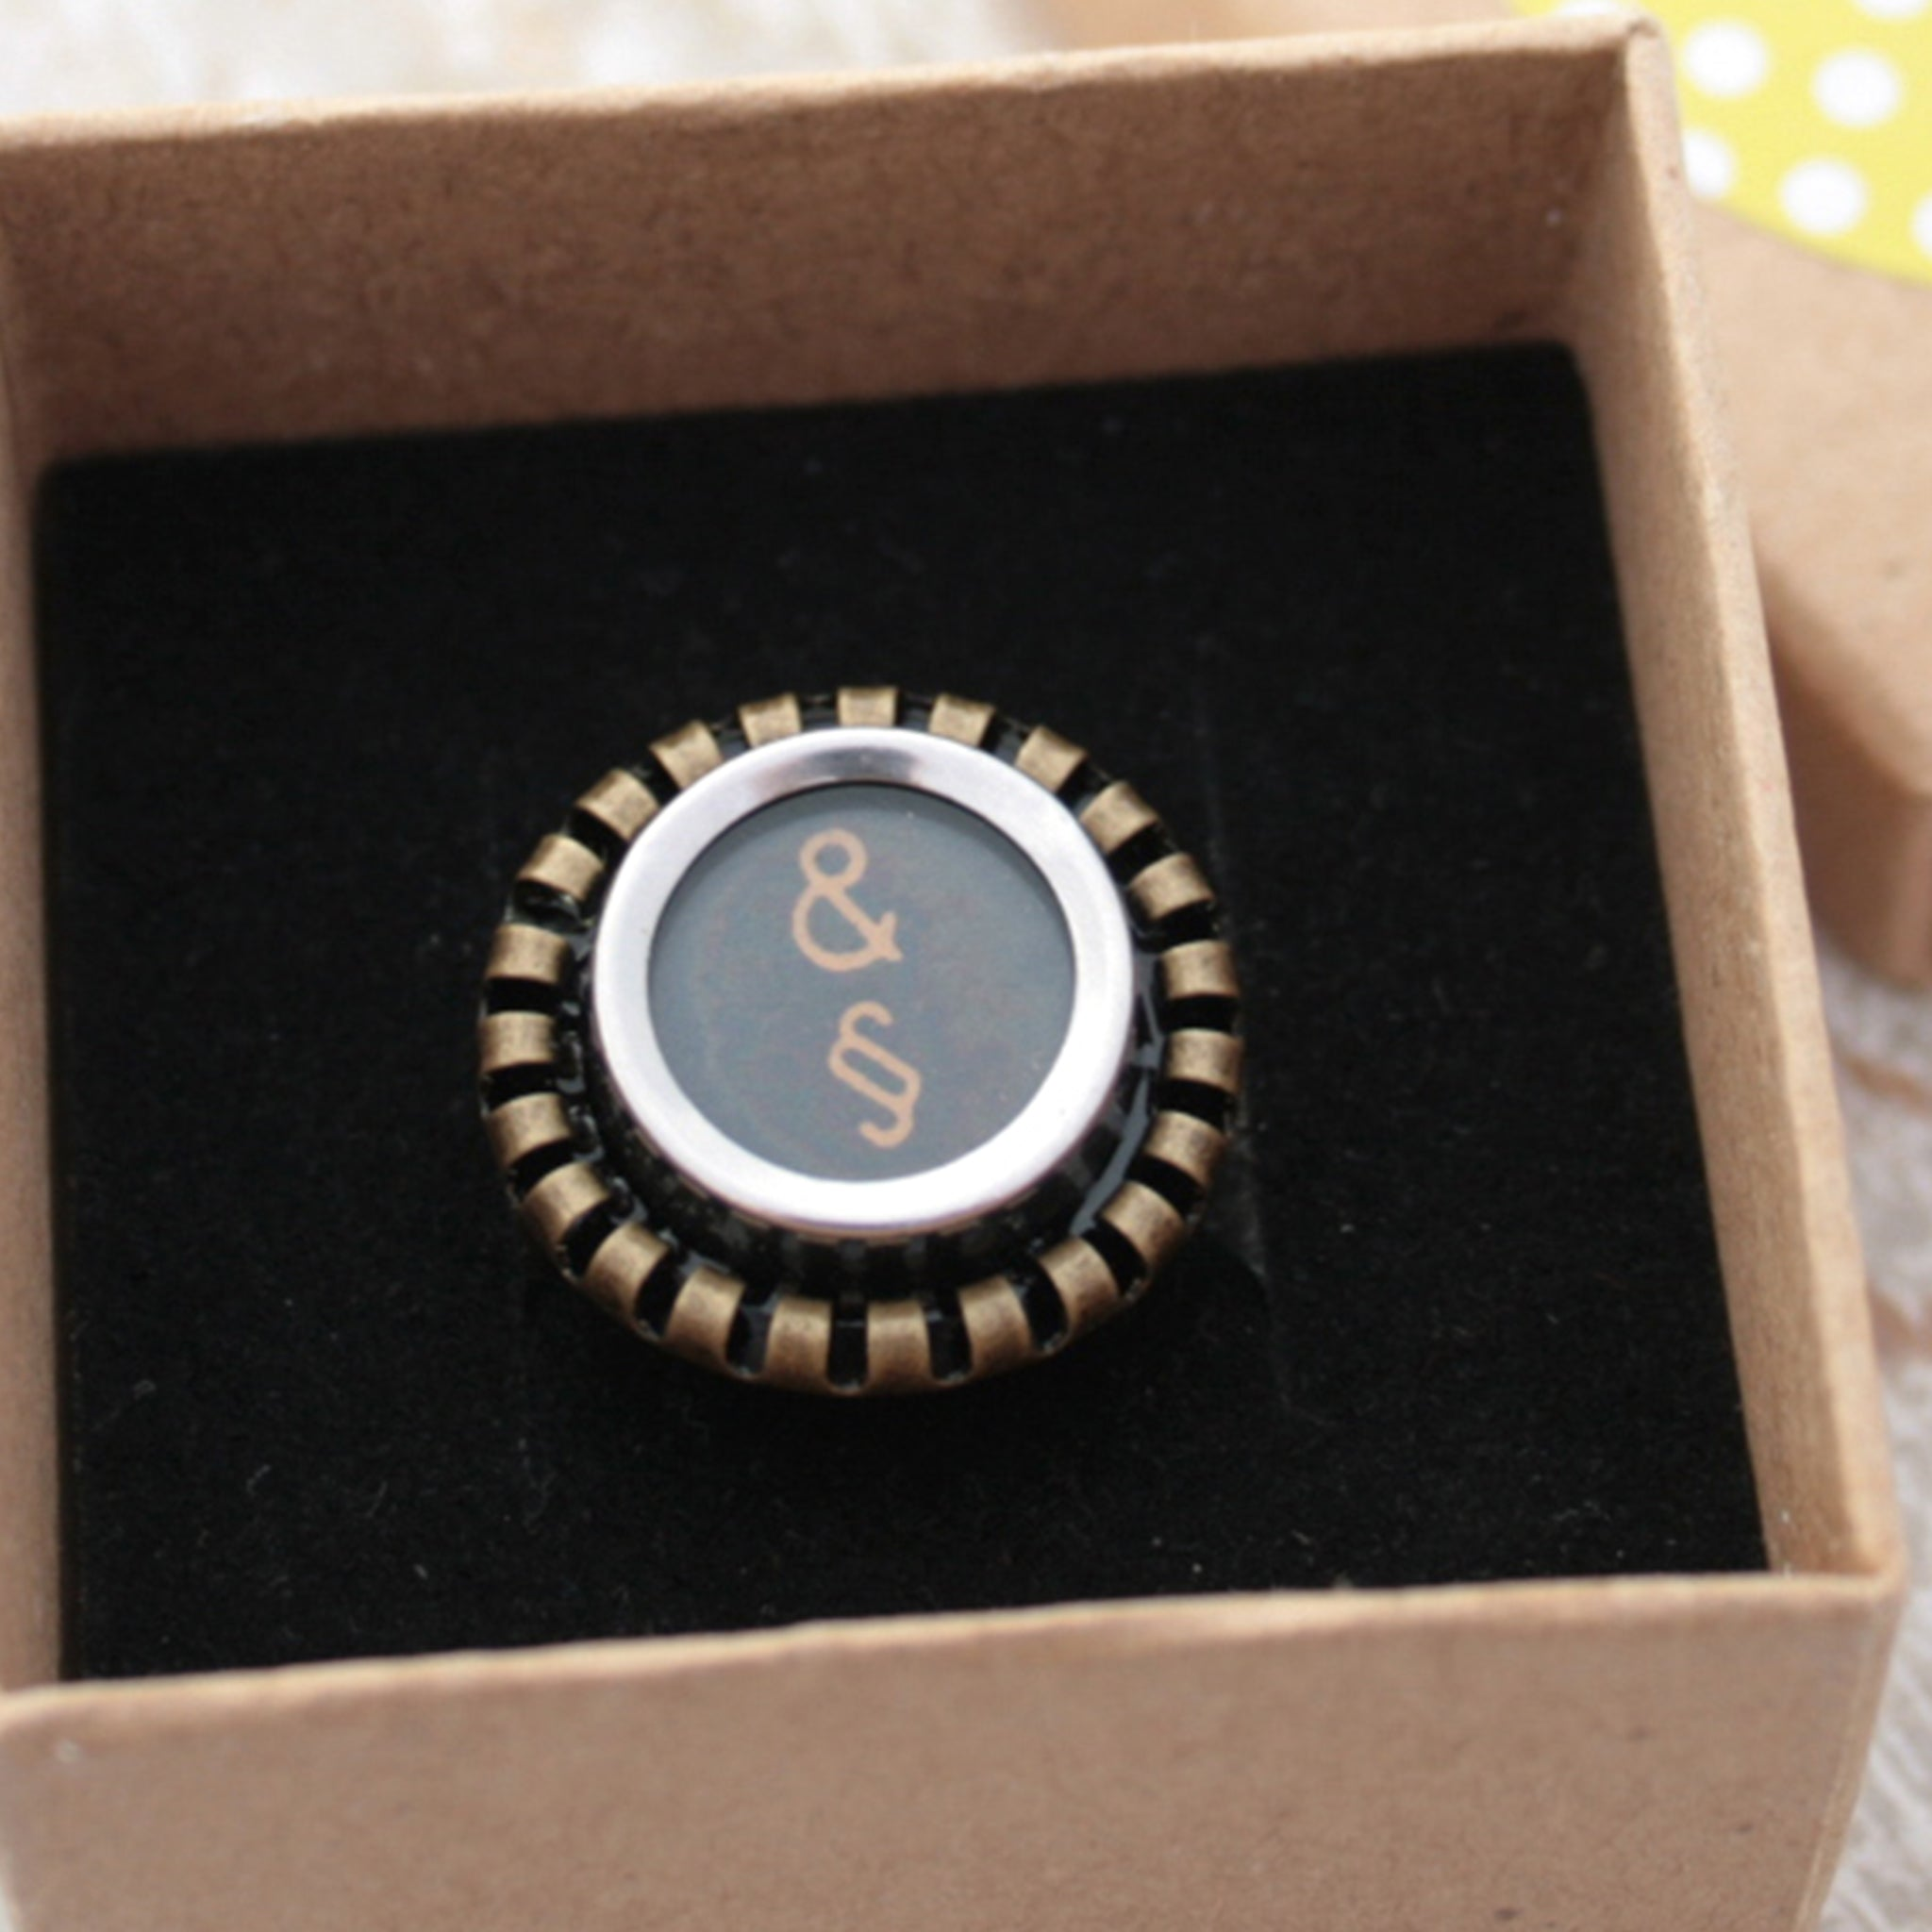 Black Ring featuring Amresand and paragraph signs made of typewriter key in a box